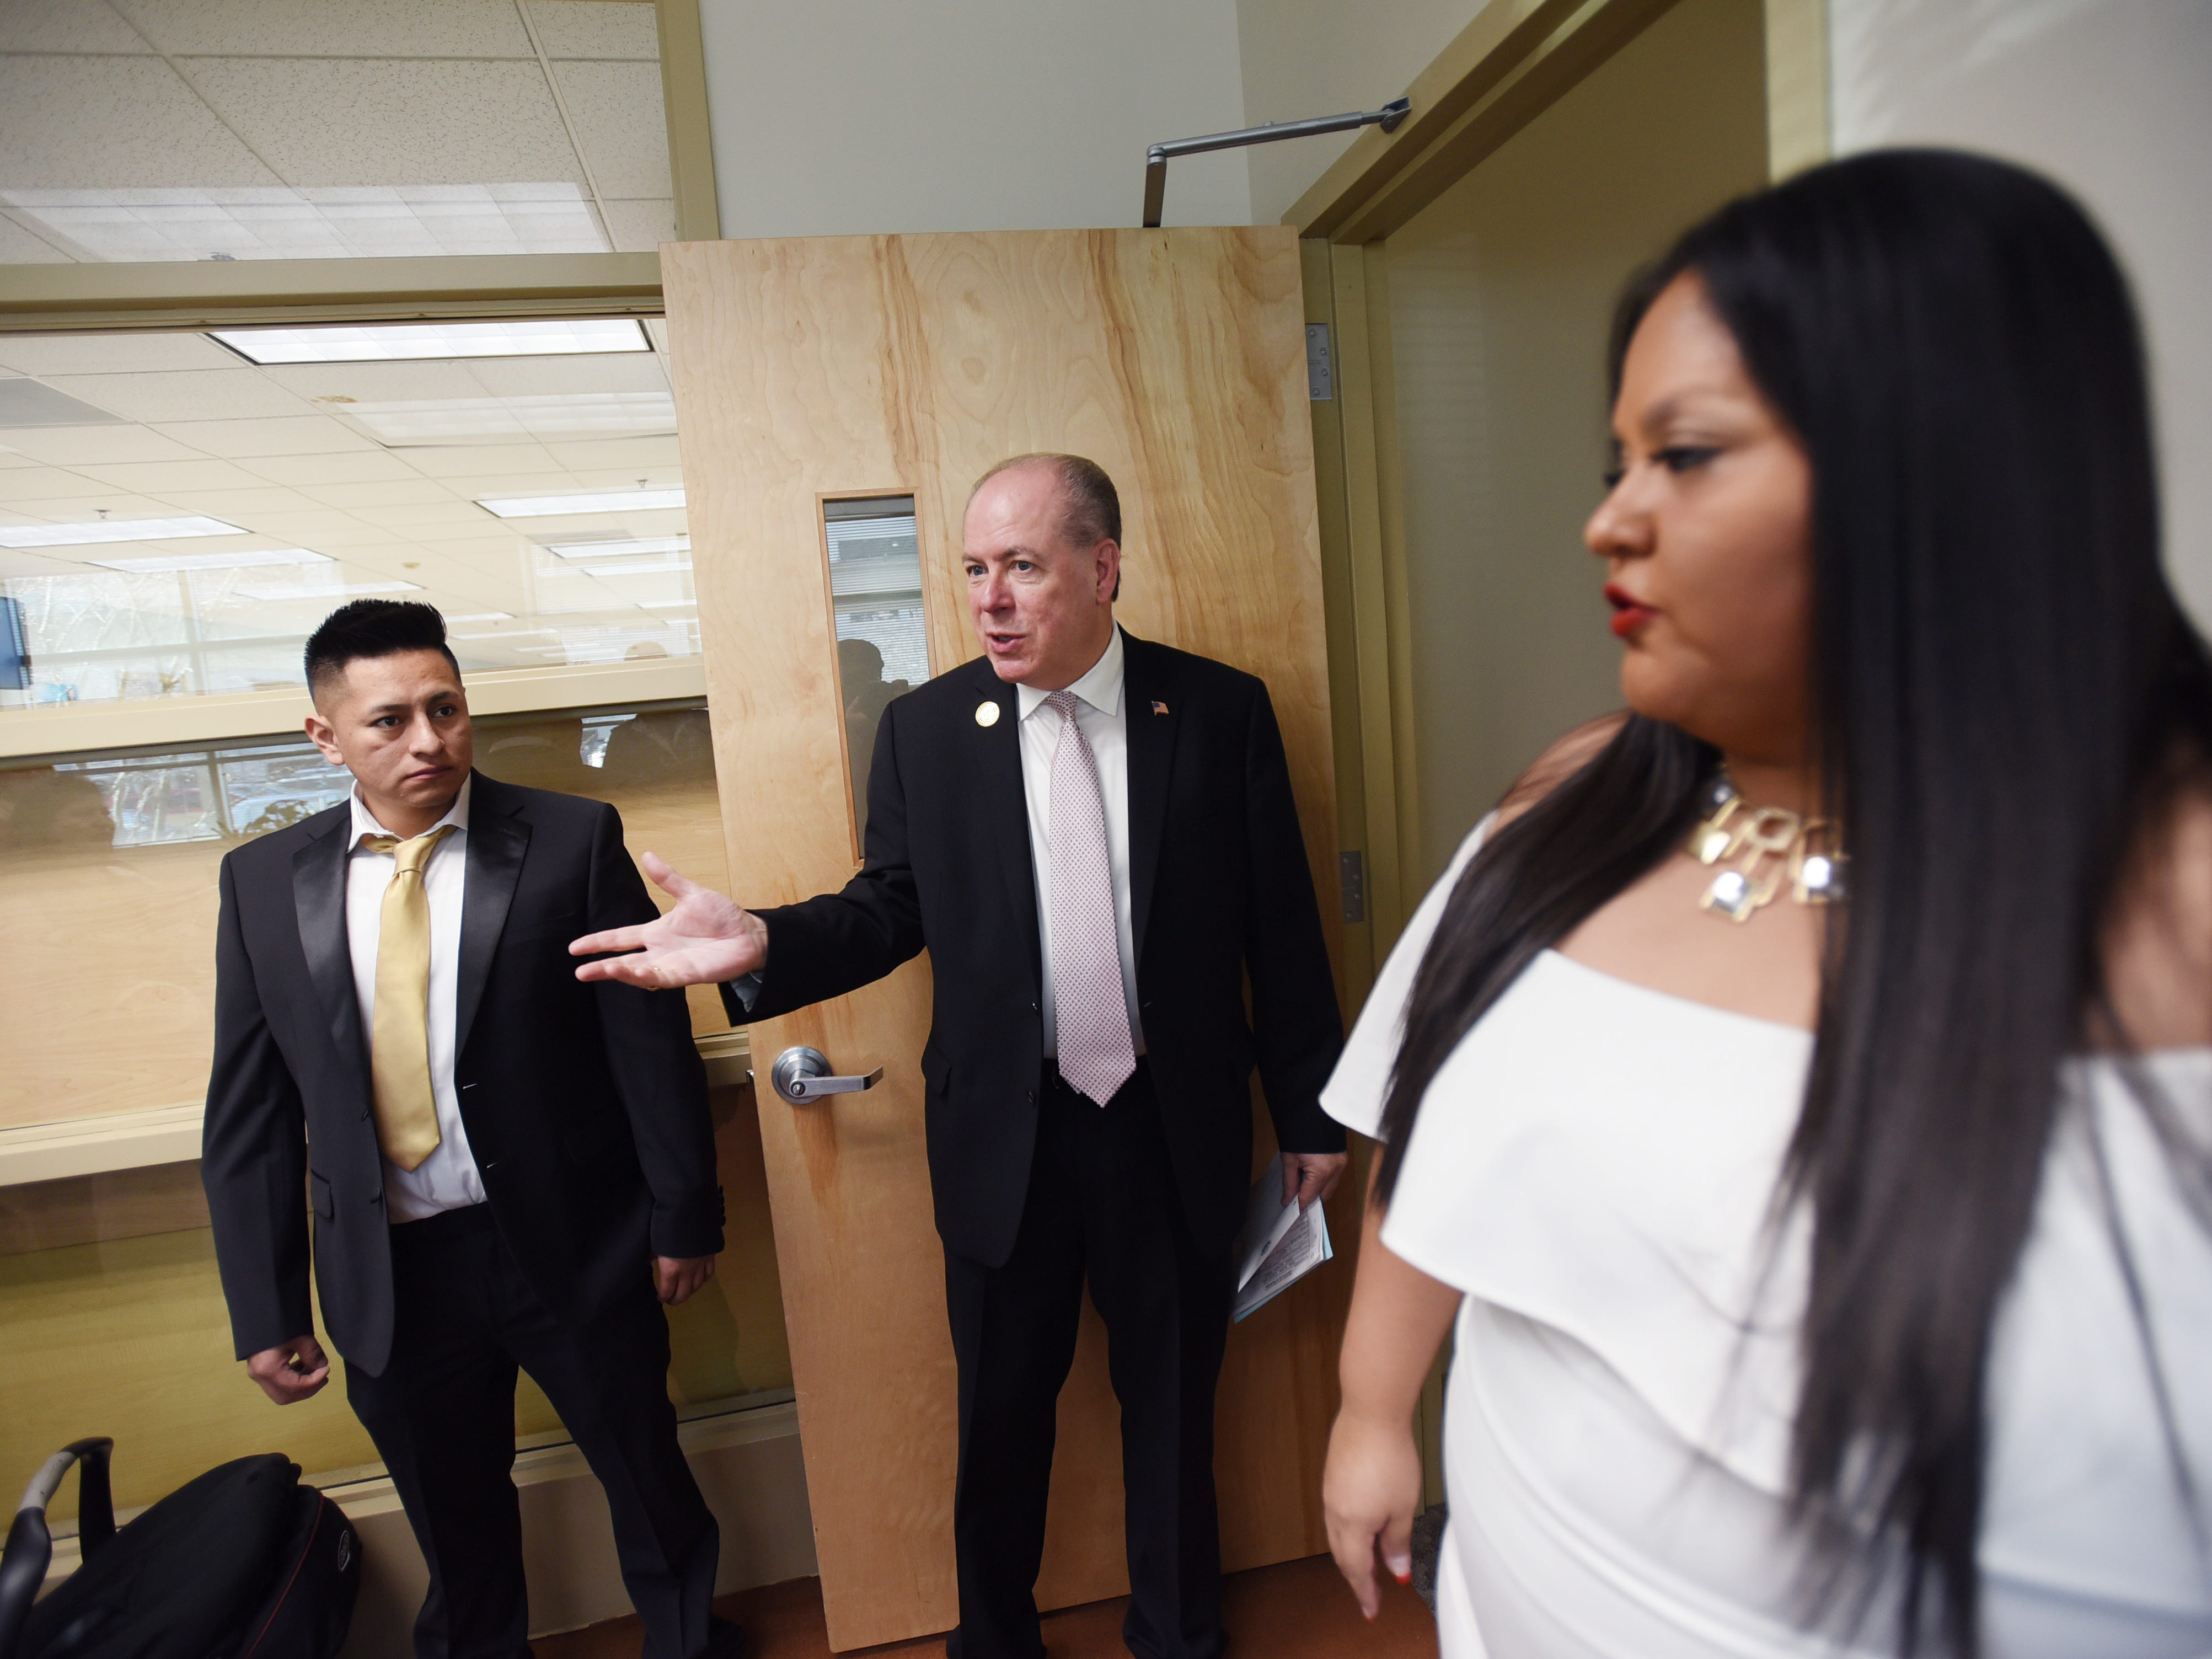 Bergen County Clerk John S. Hogan invites bride and groom, Yesenia Urgiles and Cesar Guartan of Hackensack to his office   prior to their wedding ceremony at Bergen County Clerk's Office, located at  Bergen County Plaza in Hackensack on 02/14/19.